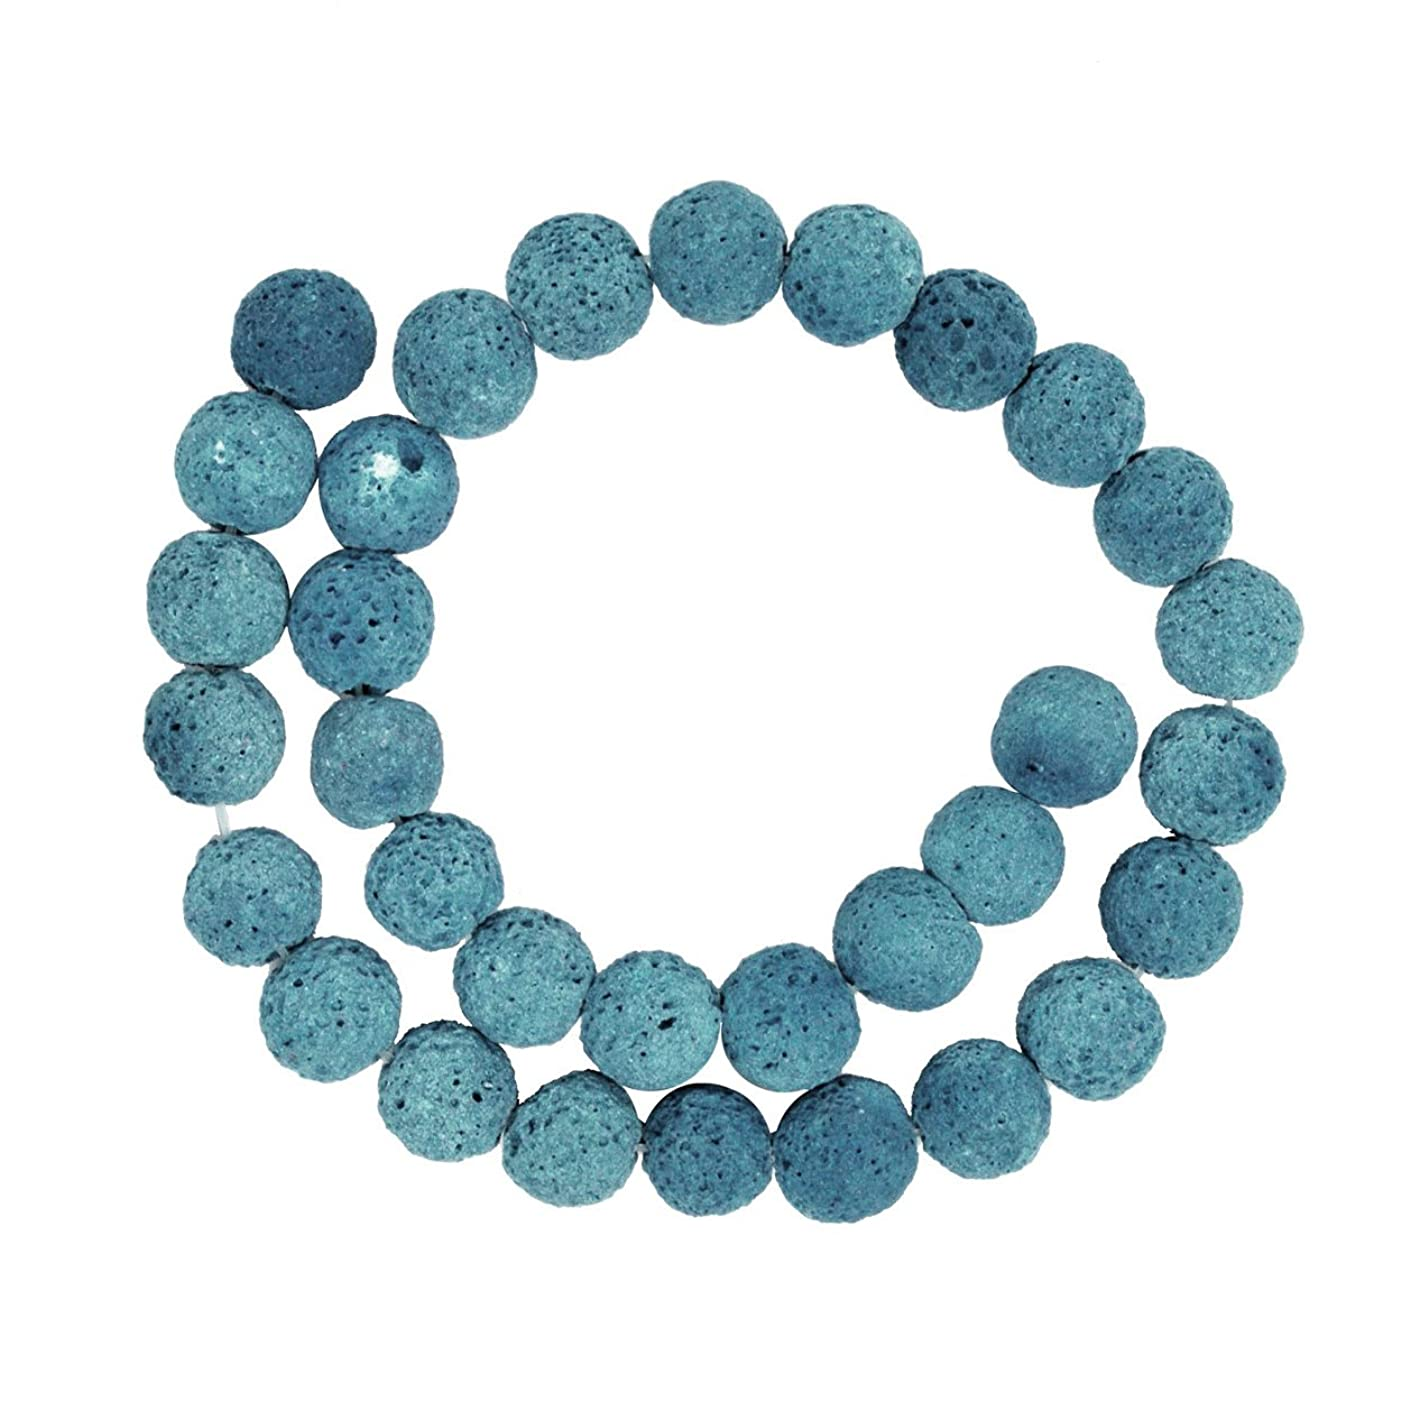 Mandala Crafts 6 8 10 12 14mm Lava Rock Stones Round Ball Beads for Essential Oil Diffuser Bracelet Necklace (10mm, Turquoise)